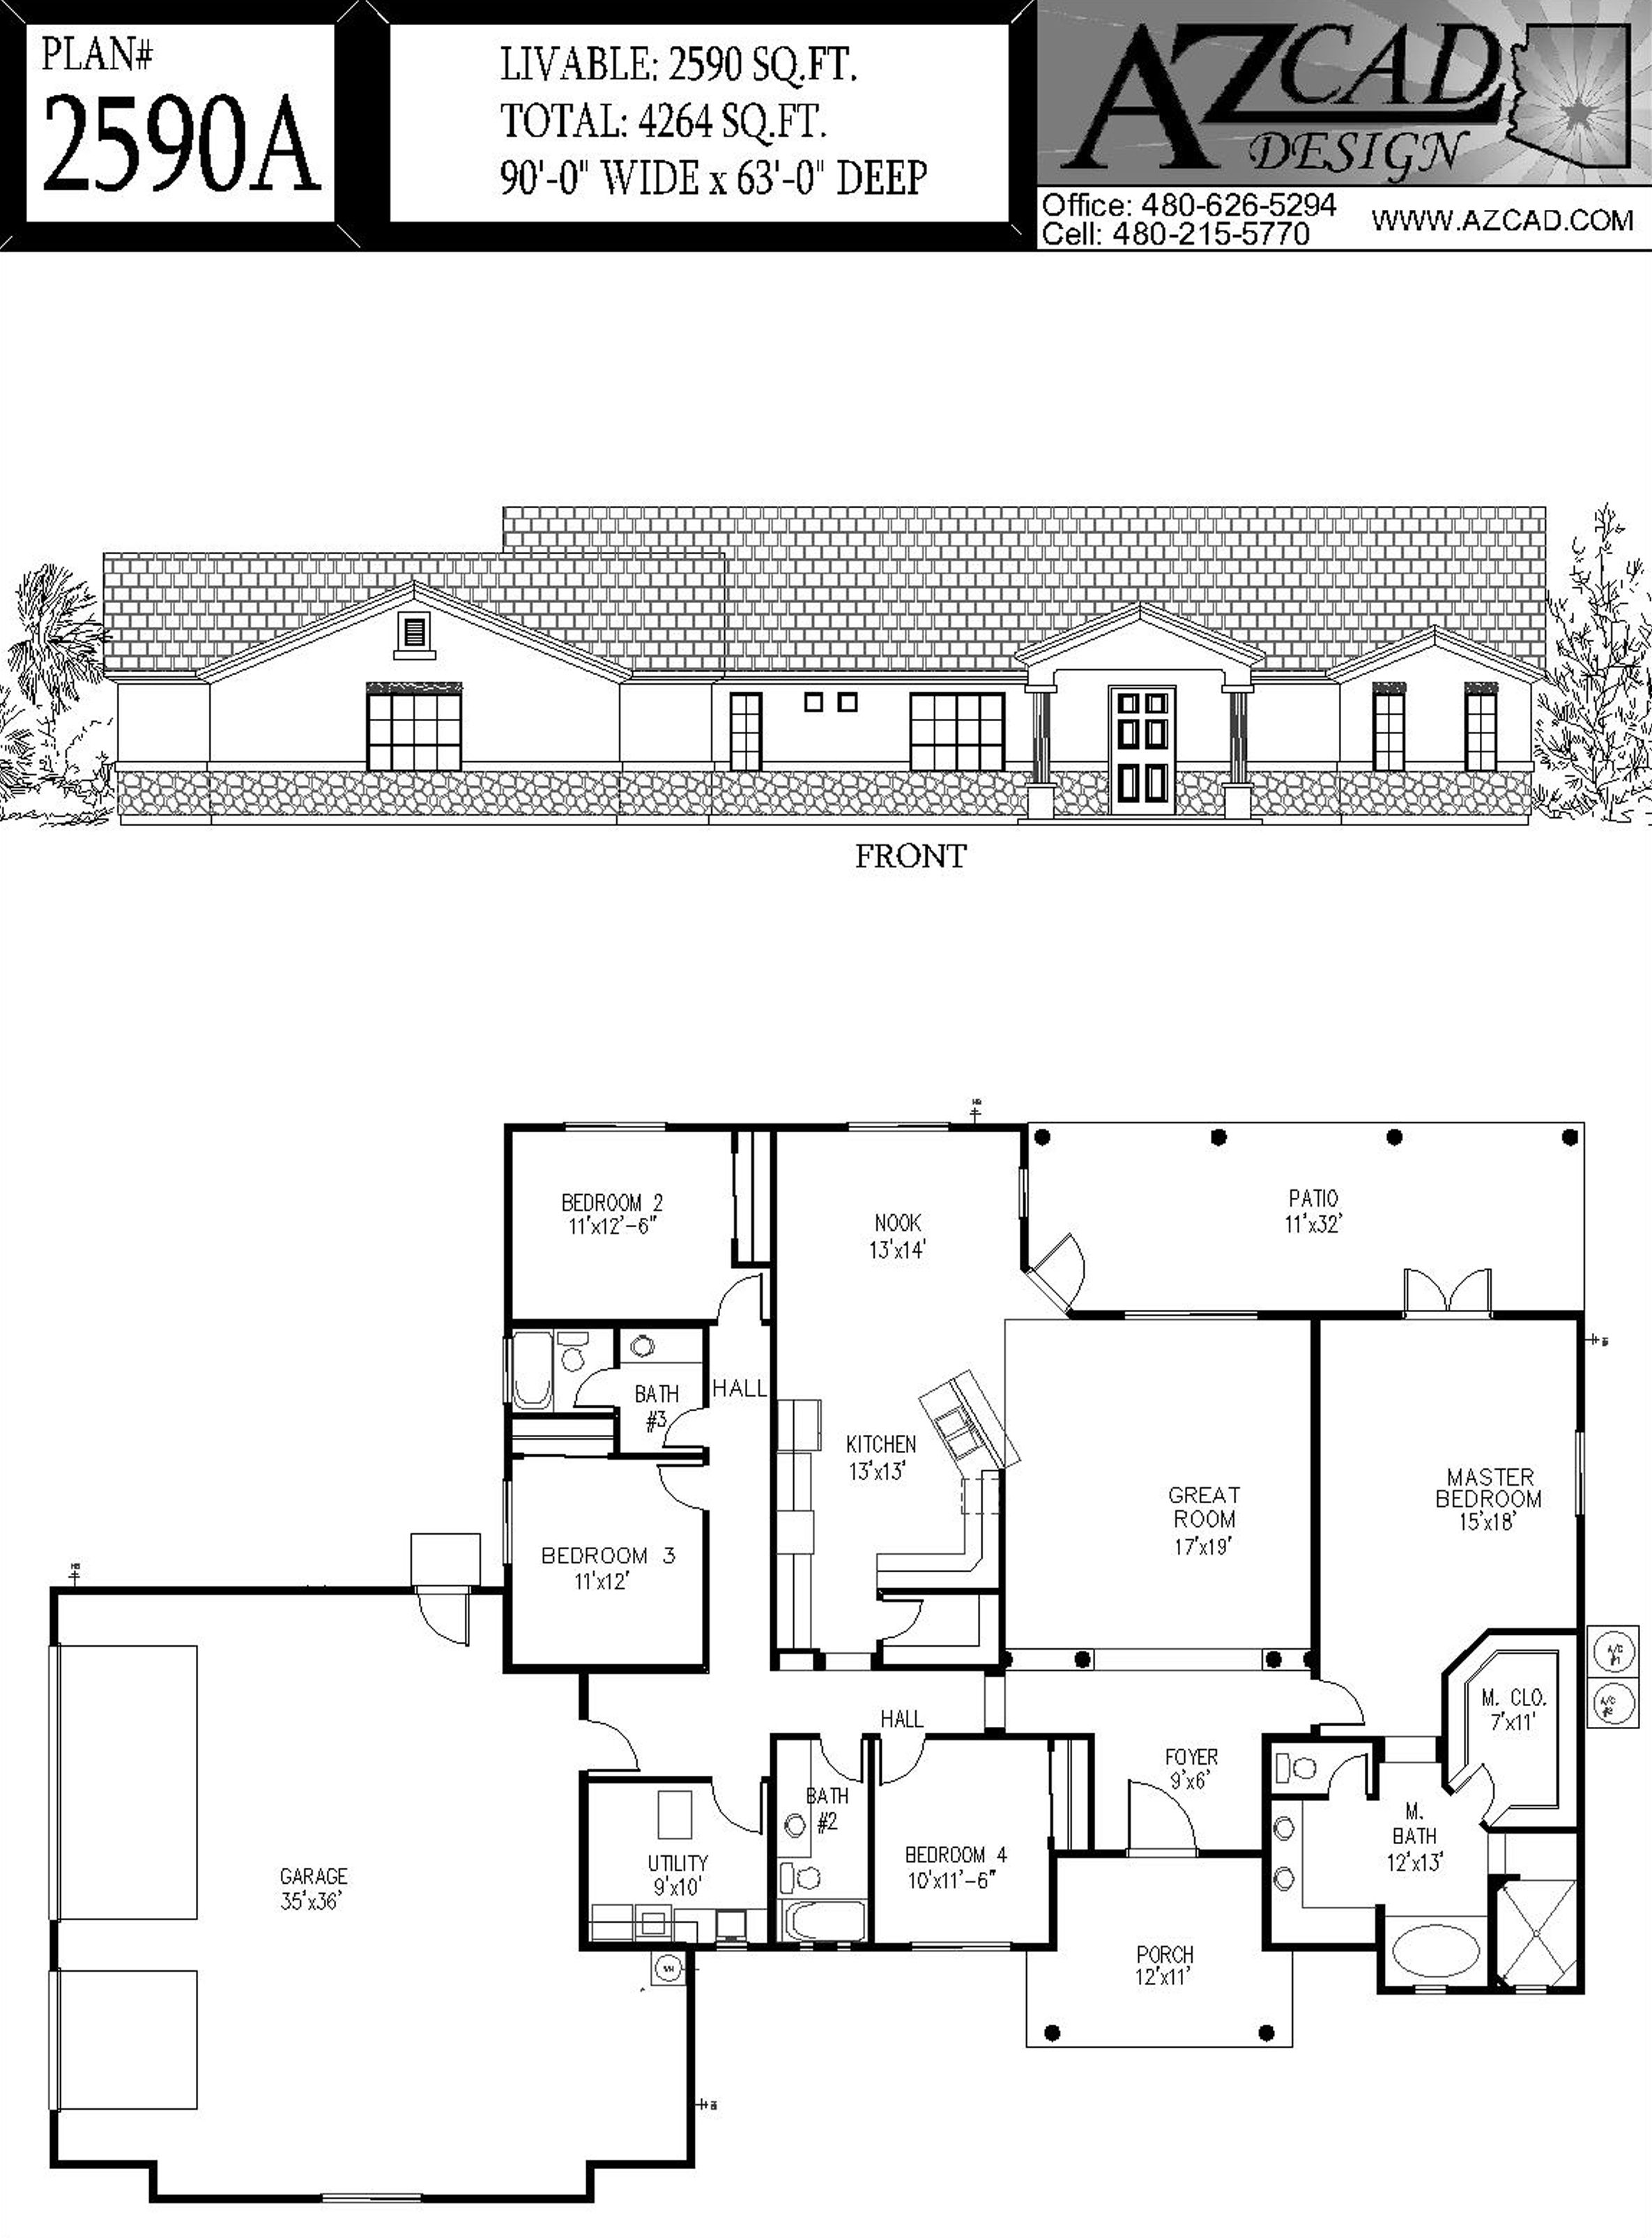 Azcad Com Drafting Arizona House Plans Floor Plans Houseplans Floor Plans Custom Homes House Plans